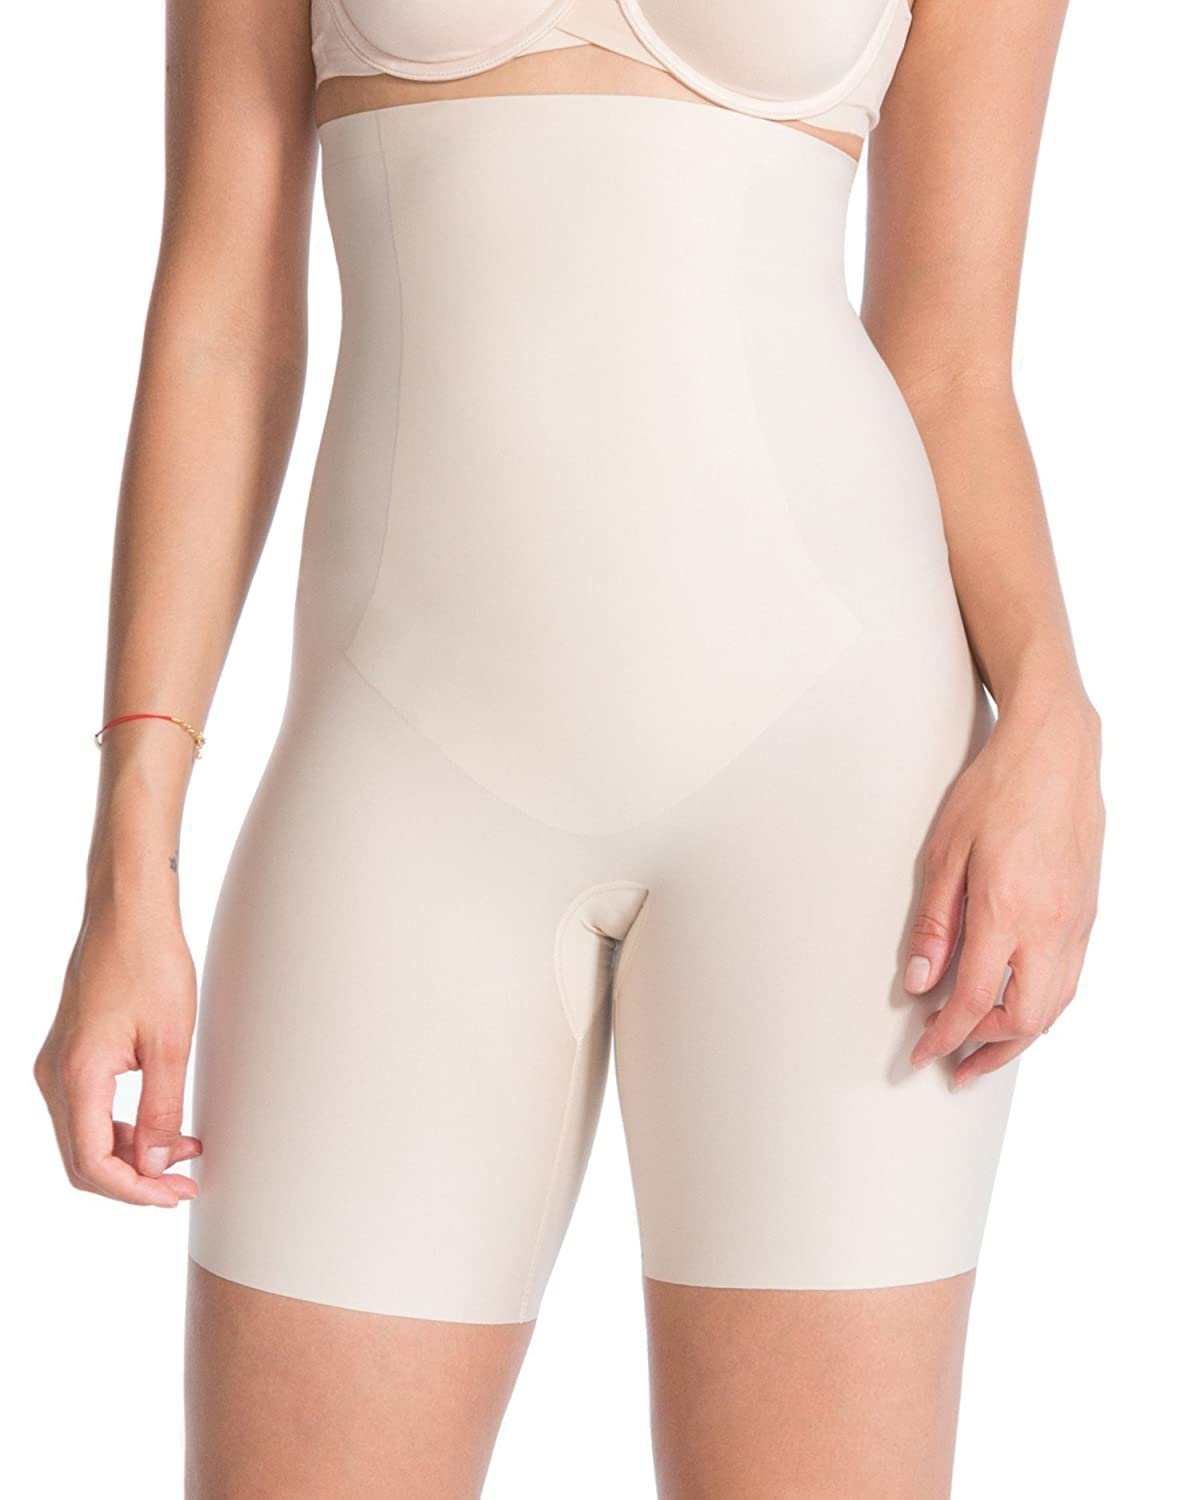 Spanx Womens Thinstincts High-Waisted Mid-Thigh Microfibre Short Shapewear